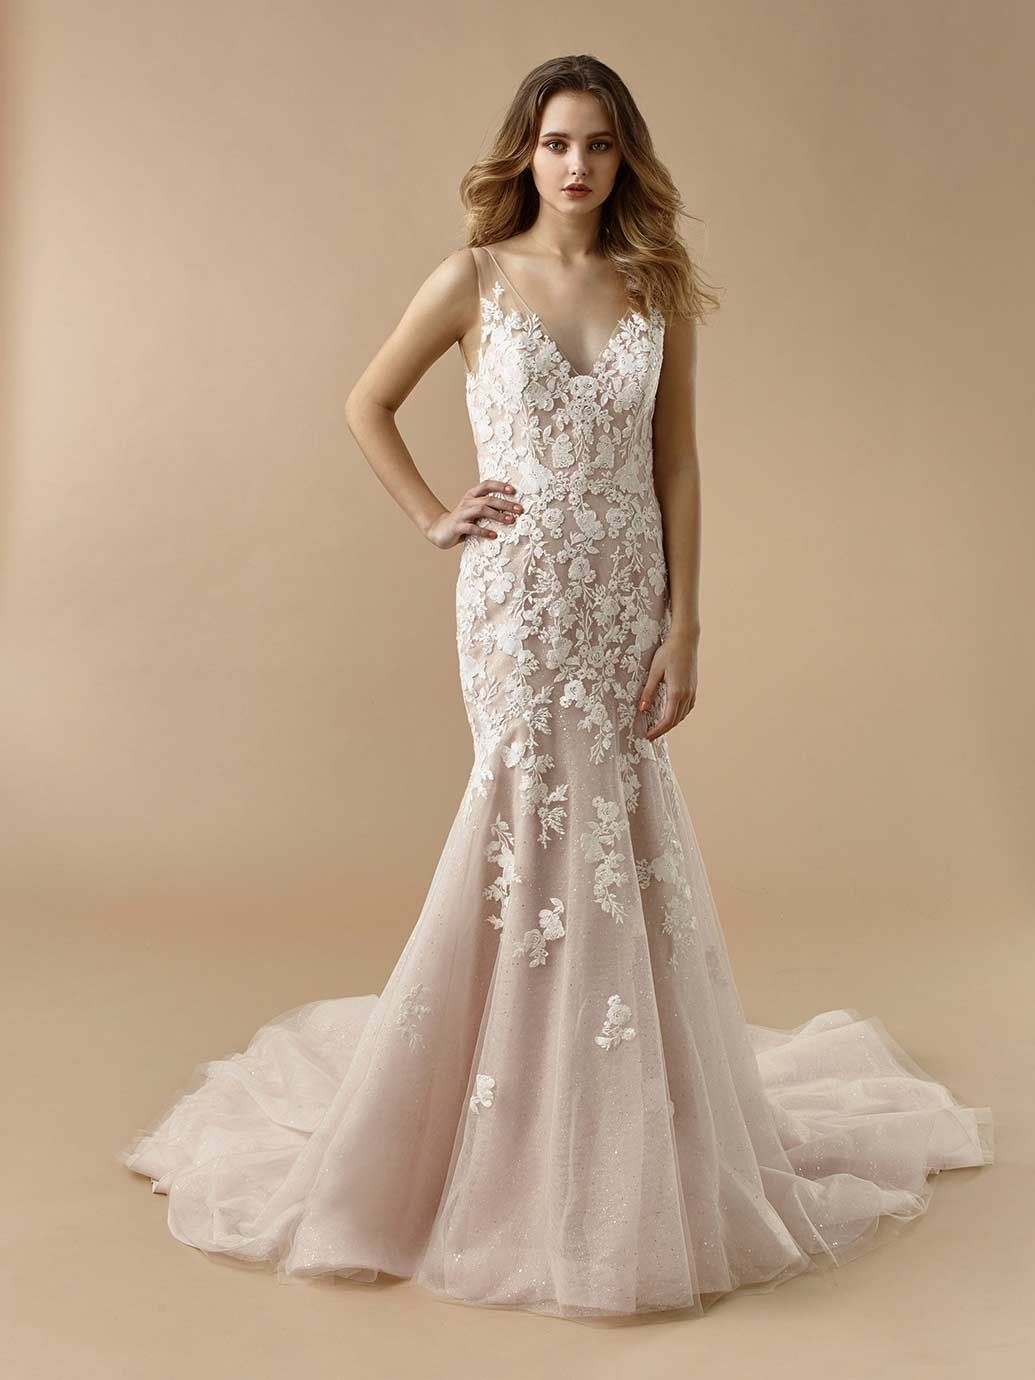 Brautkleid Modell BT20-01 aus der Beautiful Bridal Kollektion 2020